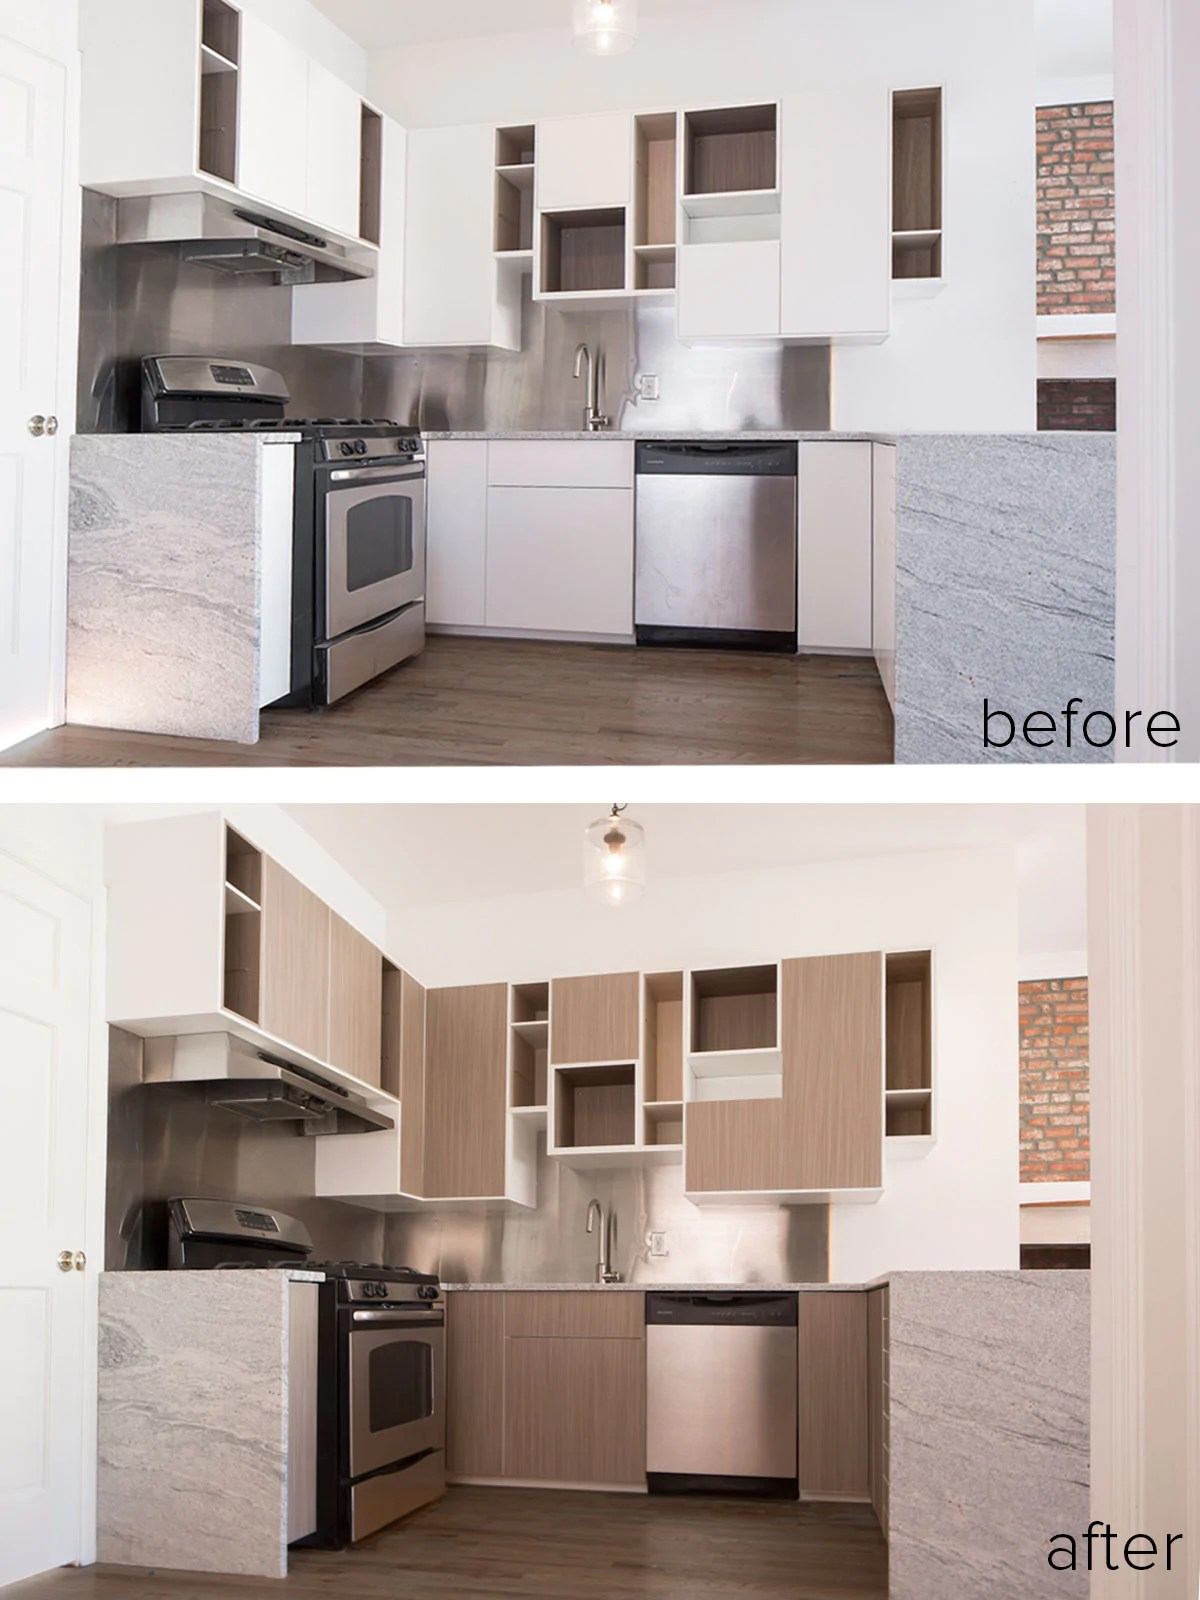 Kitchen Cabinet Door Fronts Only Before, During, After: Panyling An Ikea Sektion Kitchen